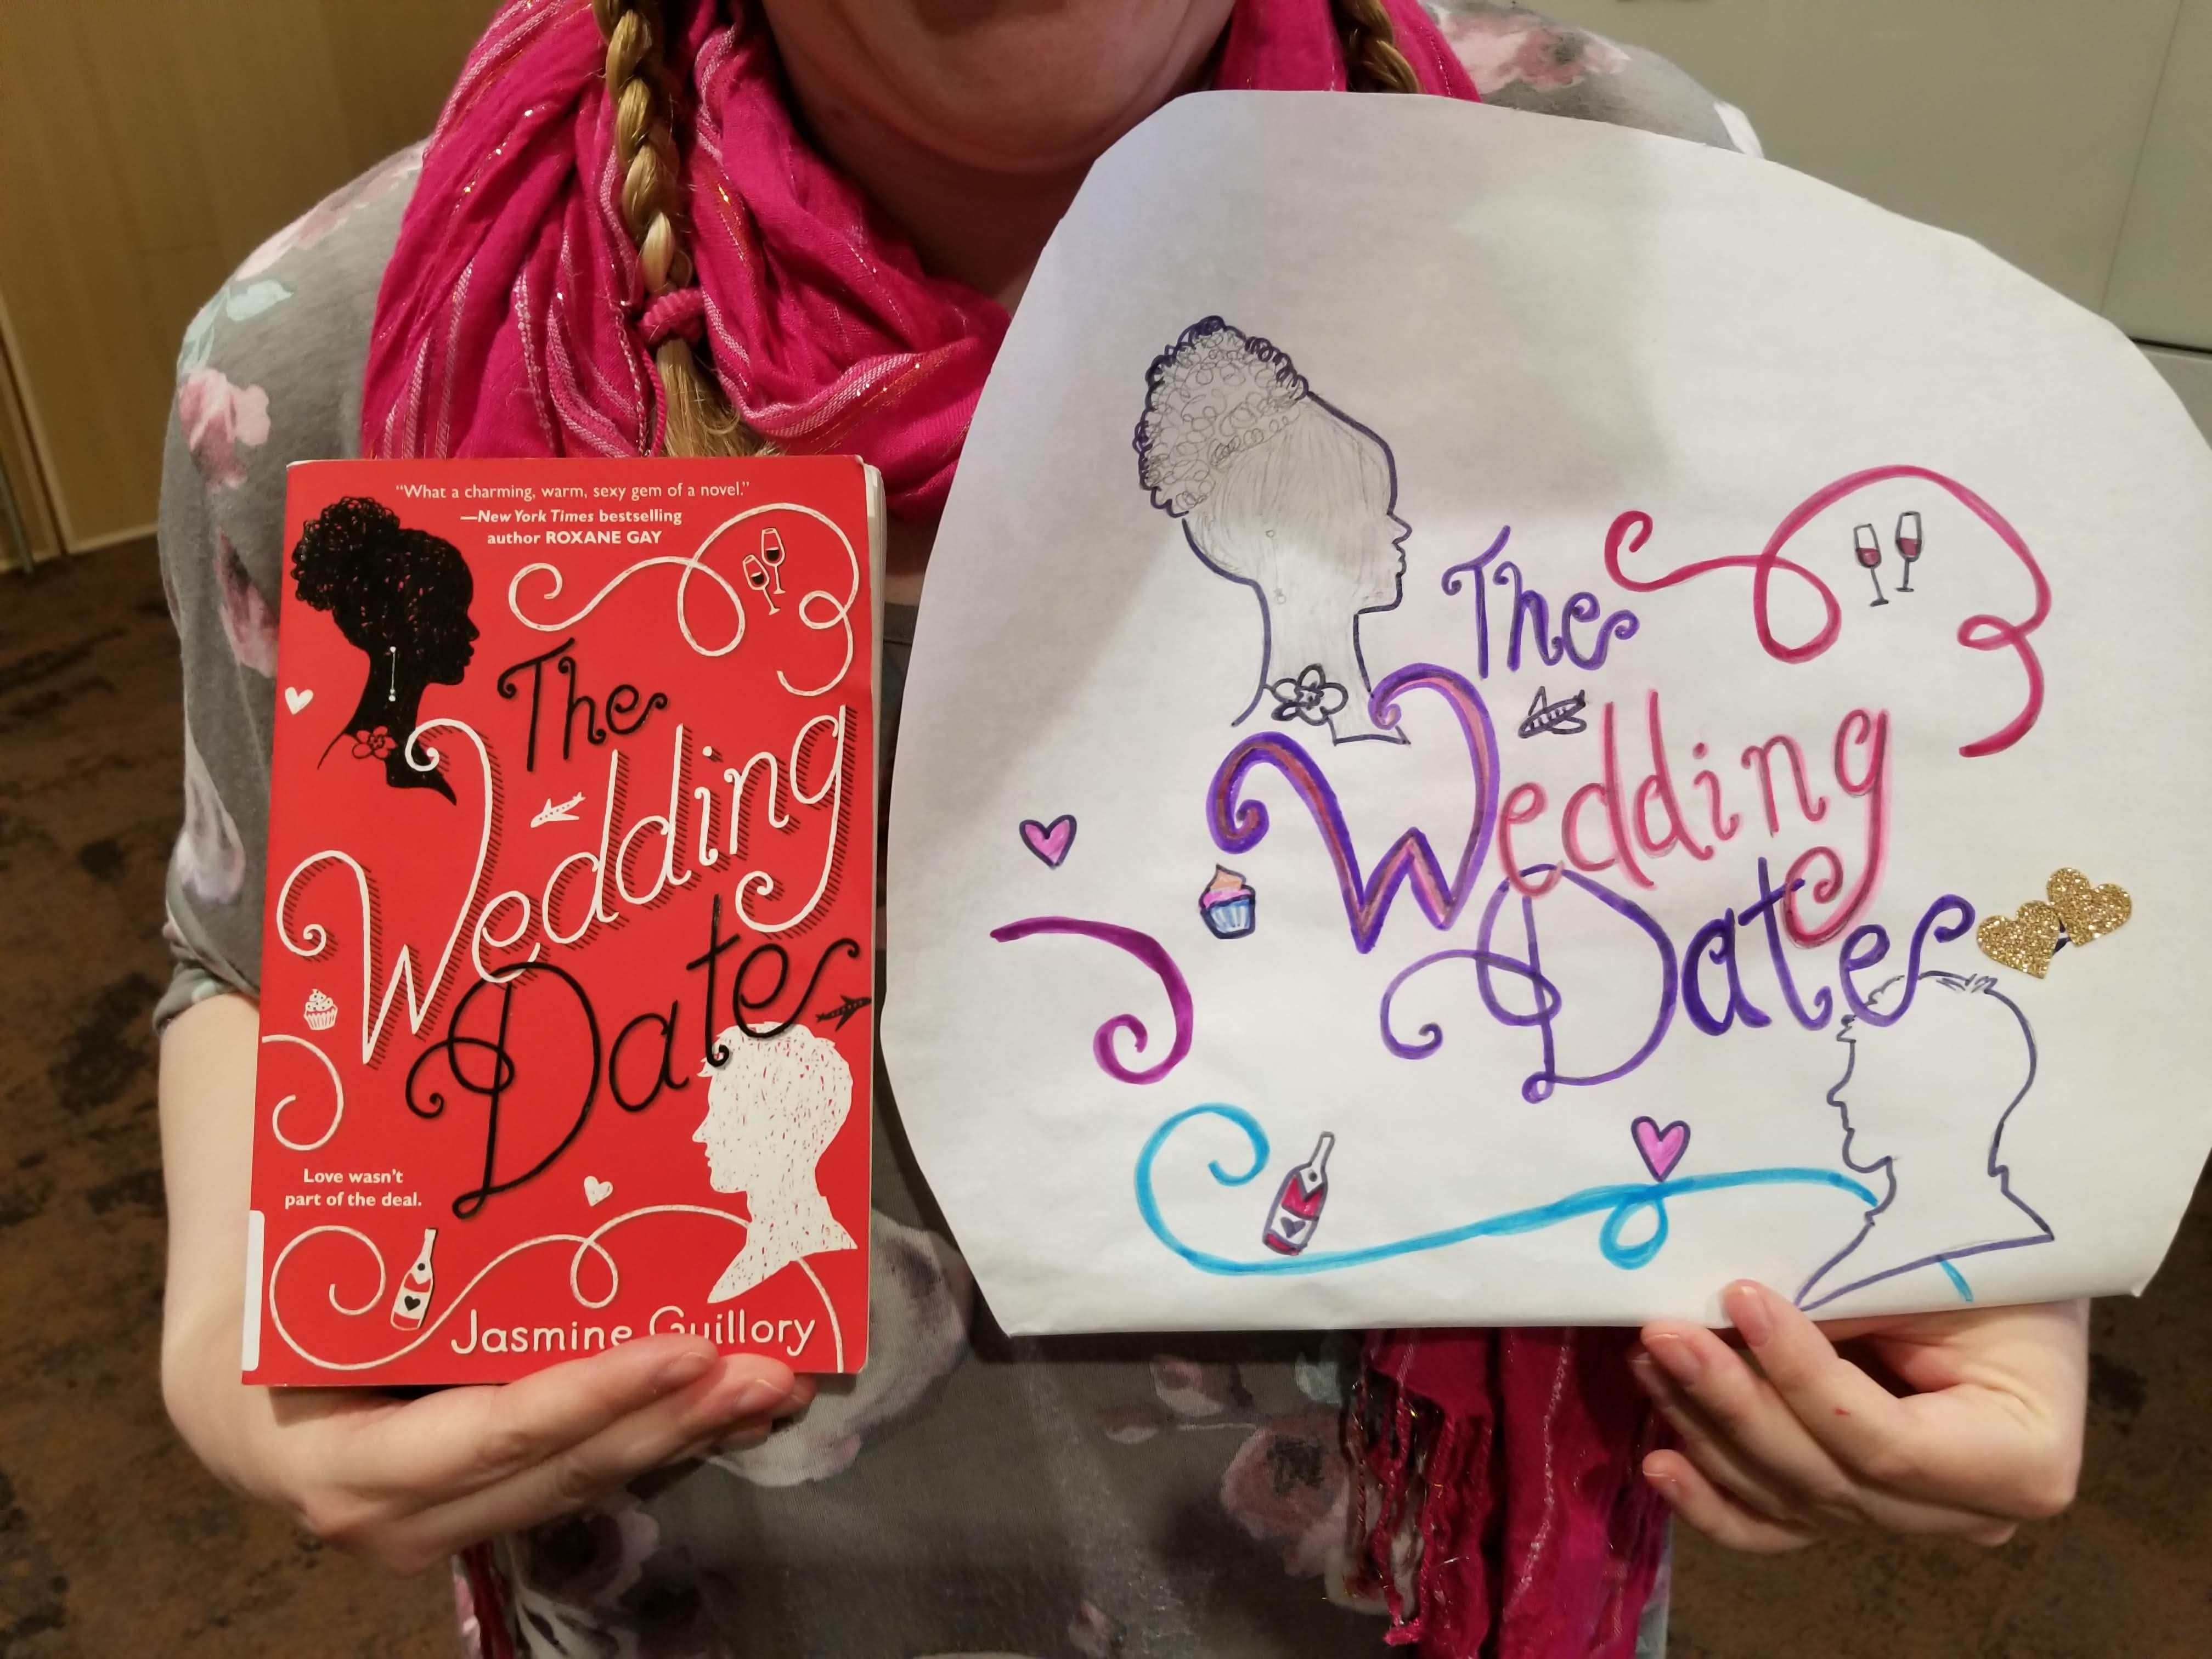 The Wedding Date by Jasmine Guillory Book to Art project